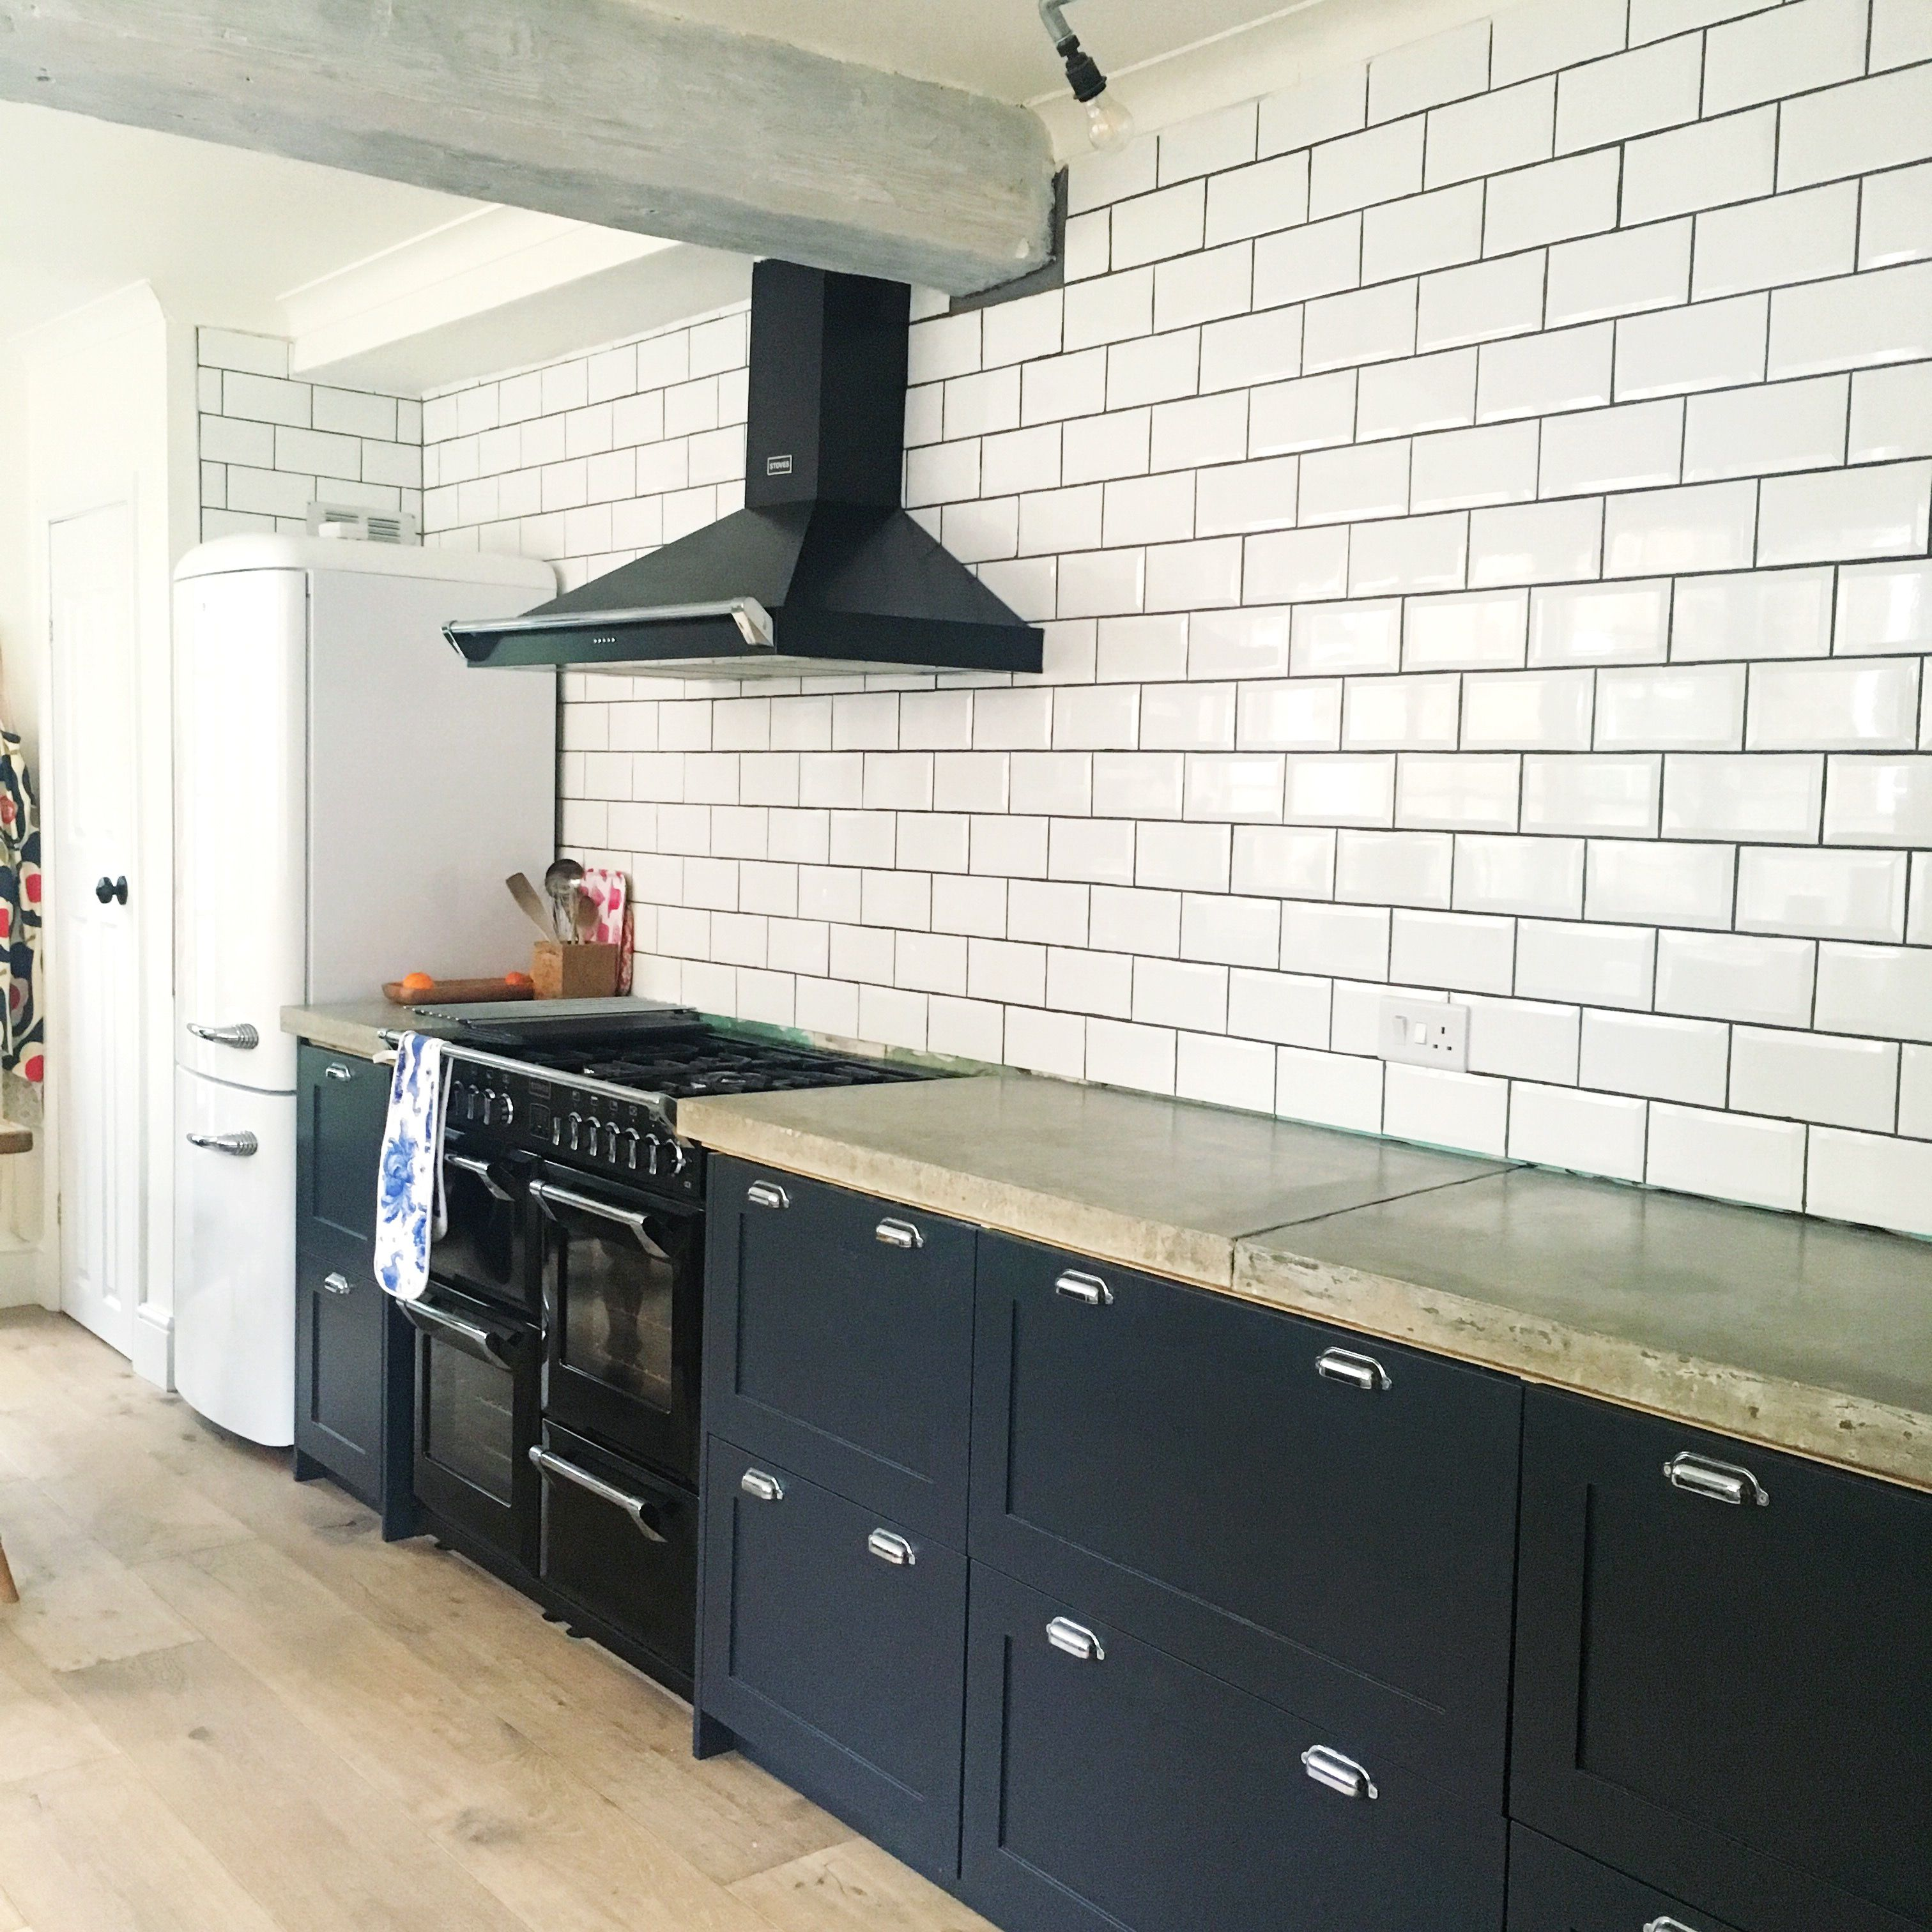 Our kitchen (almost finished) - shaker cupboards in Farrow & Ball ...